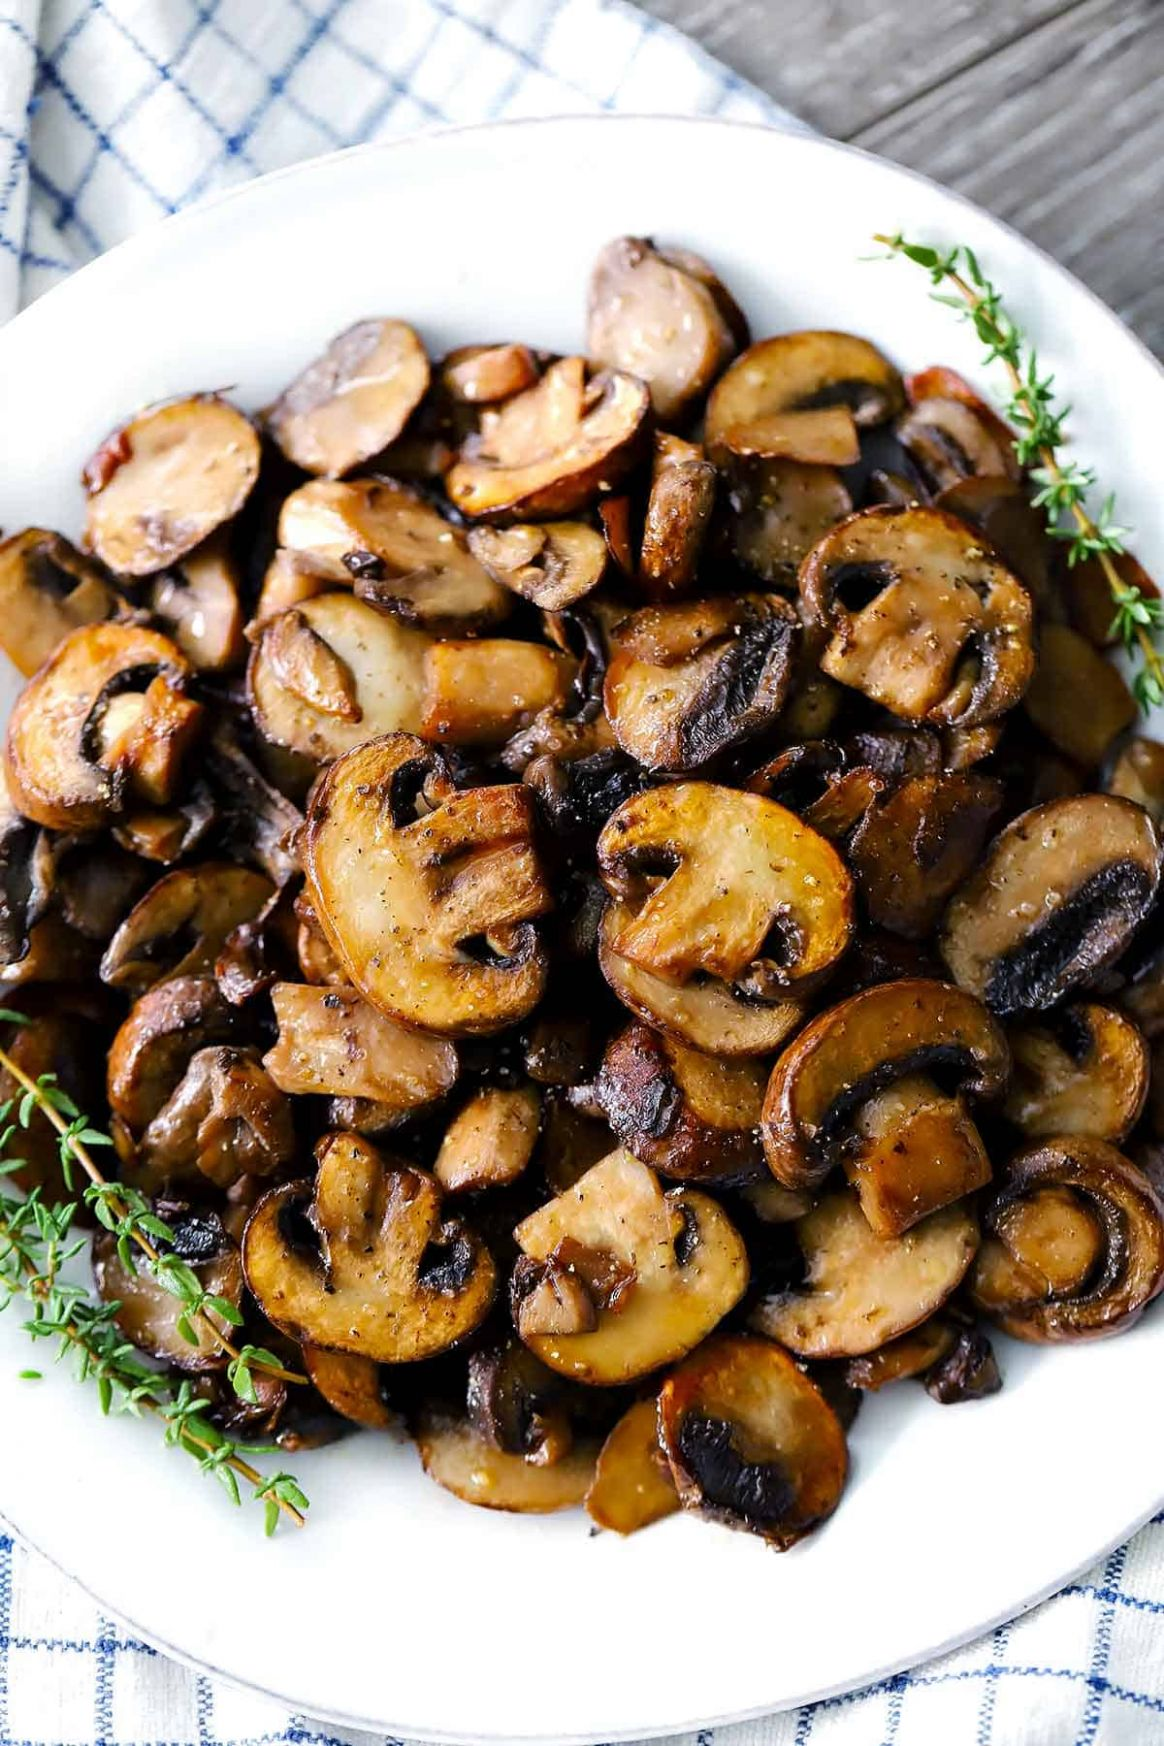 Perfectly Browned Sautéed Mushrooms - Recipes Cooking Mushrooms